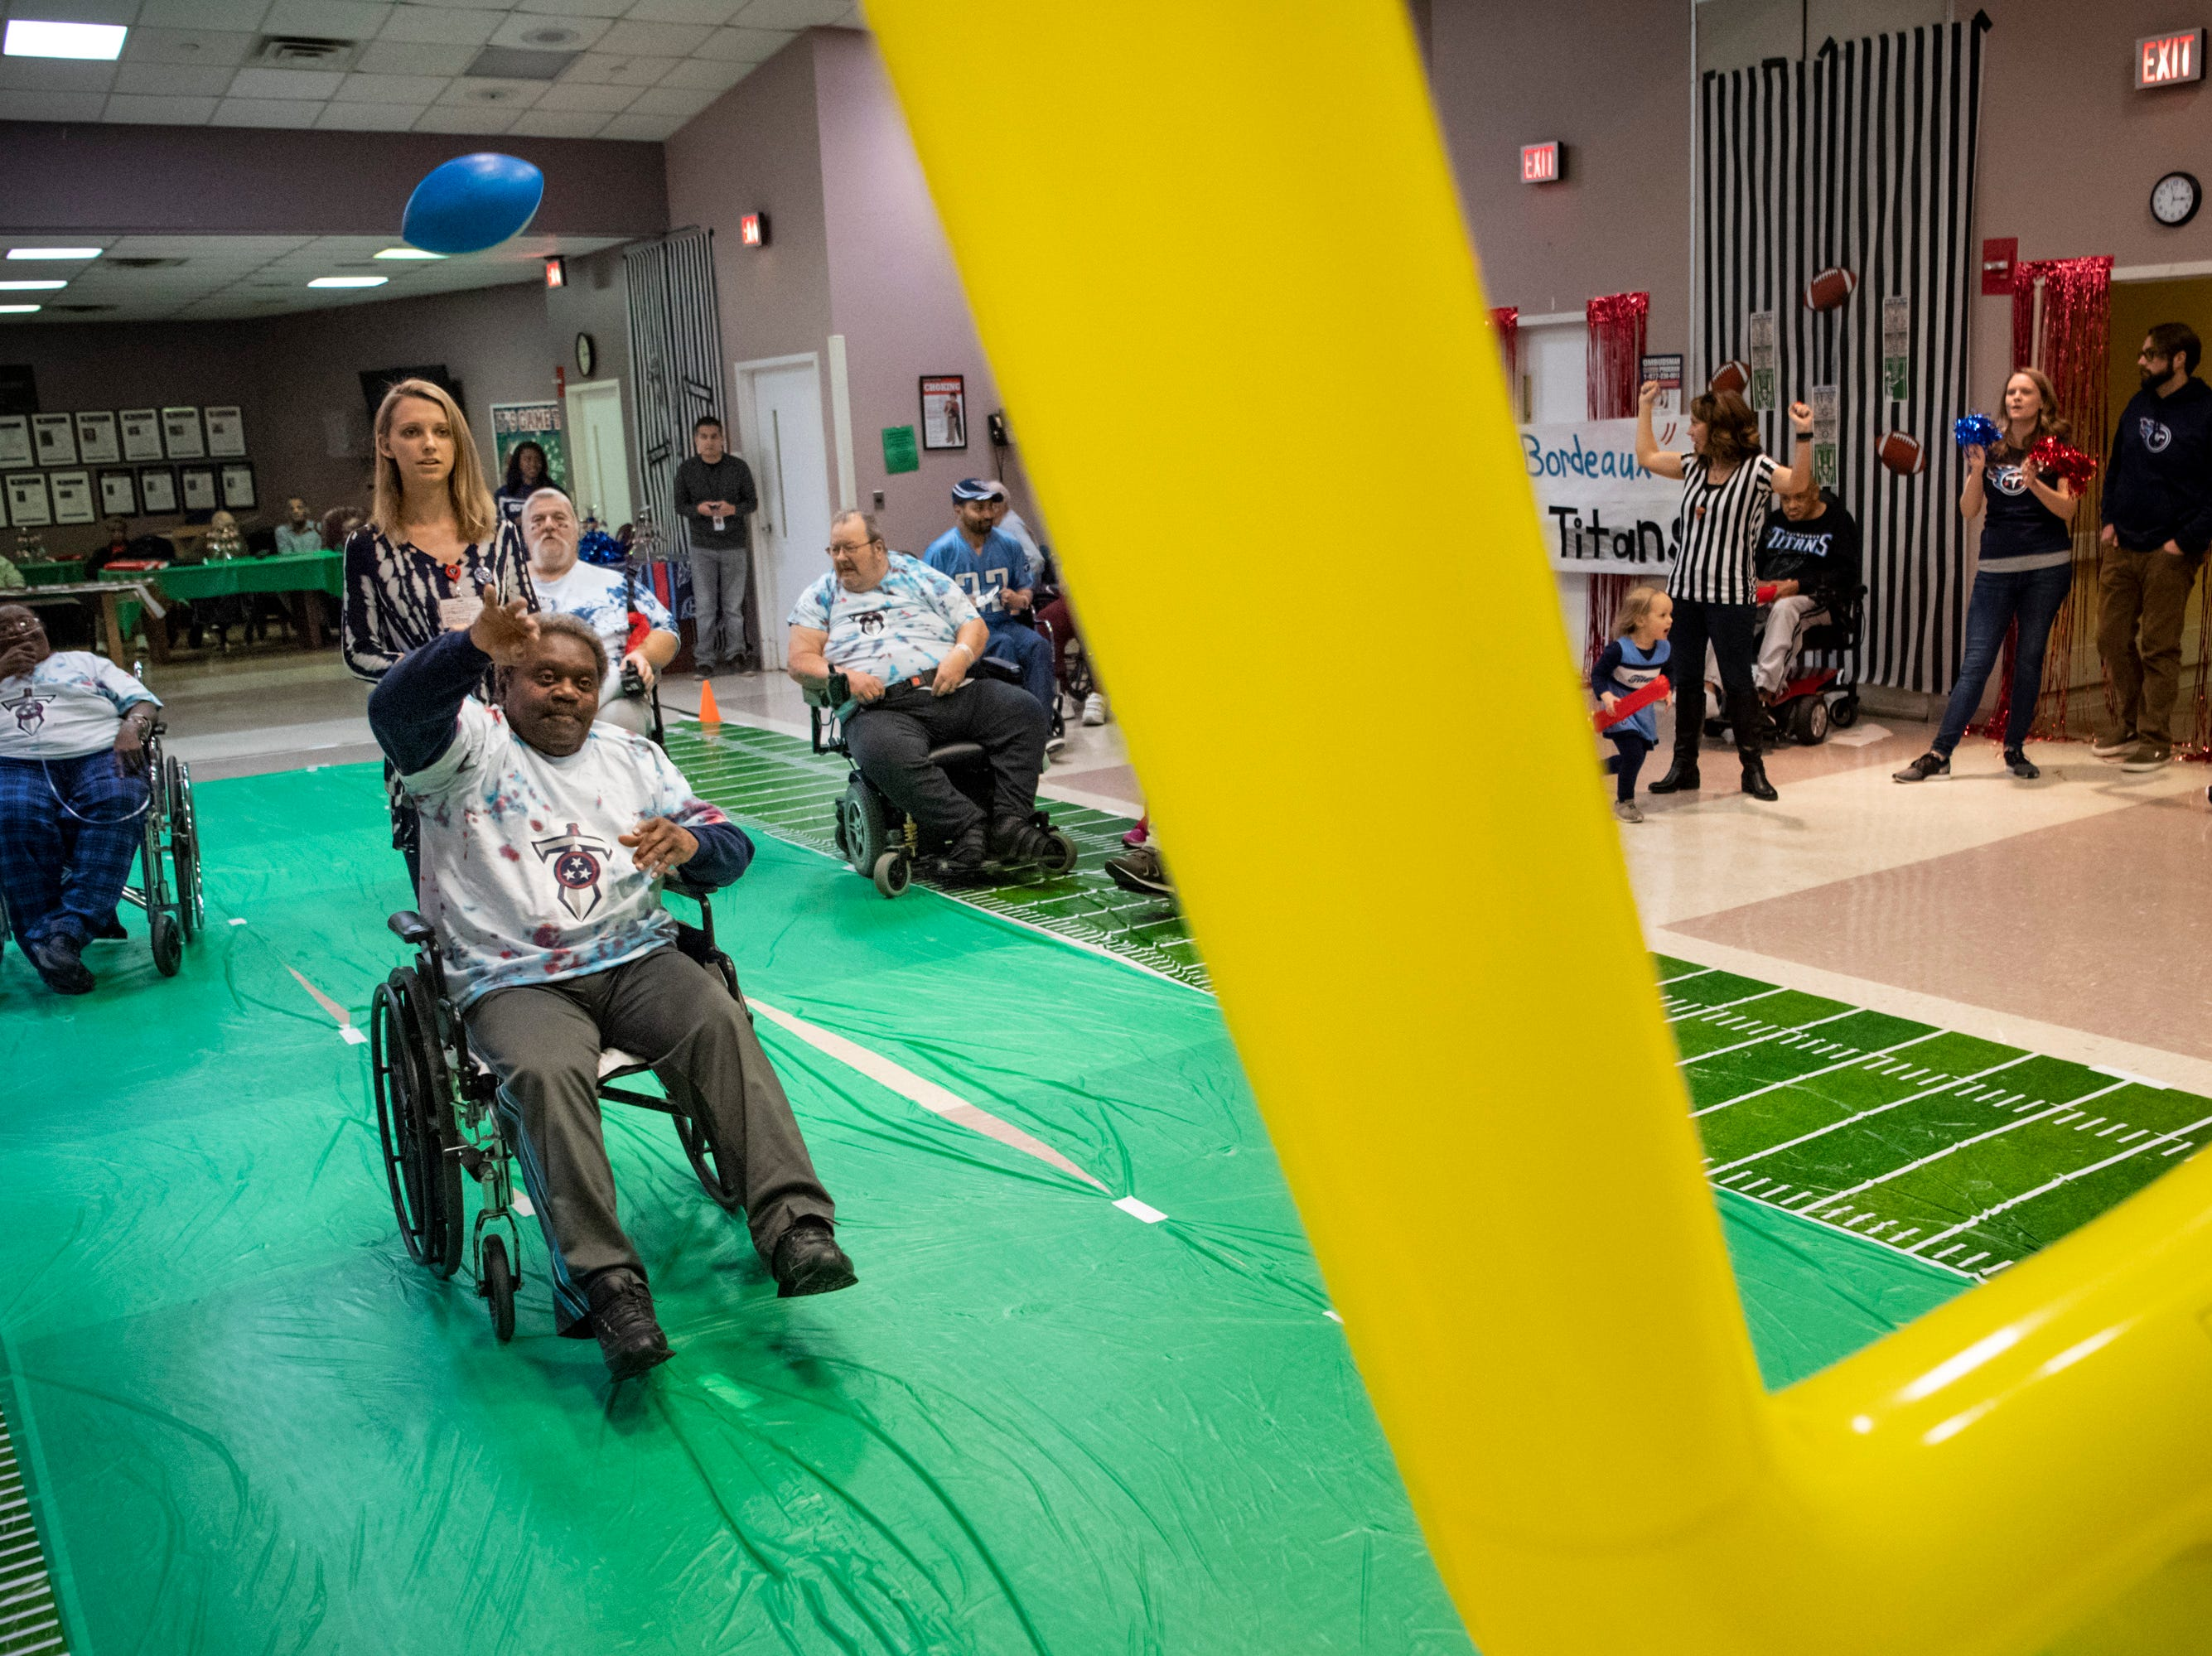 James Guest throws in a field goal during the Wheelchair Super Bowl at Nashville Community Care and Rehabilitation at Bordeaux in Nashville, Tenn., Friday, Feb. 1, 2019.